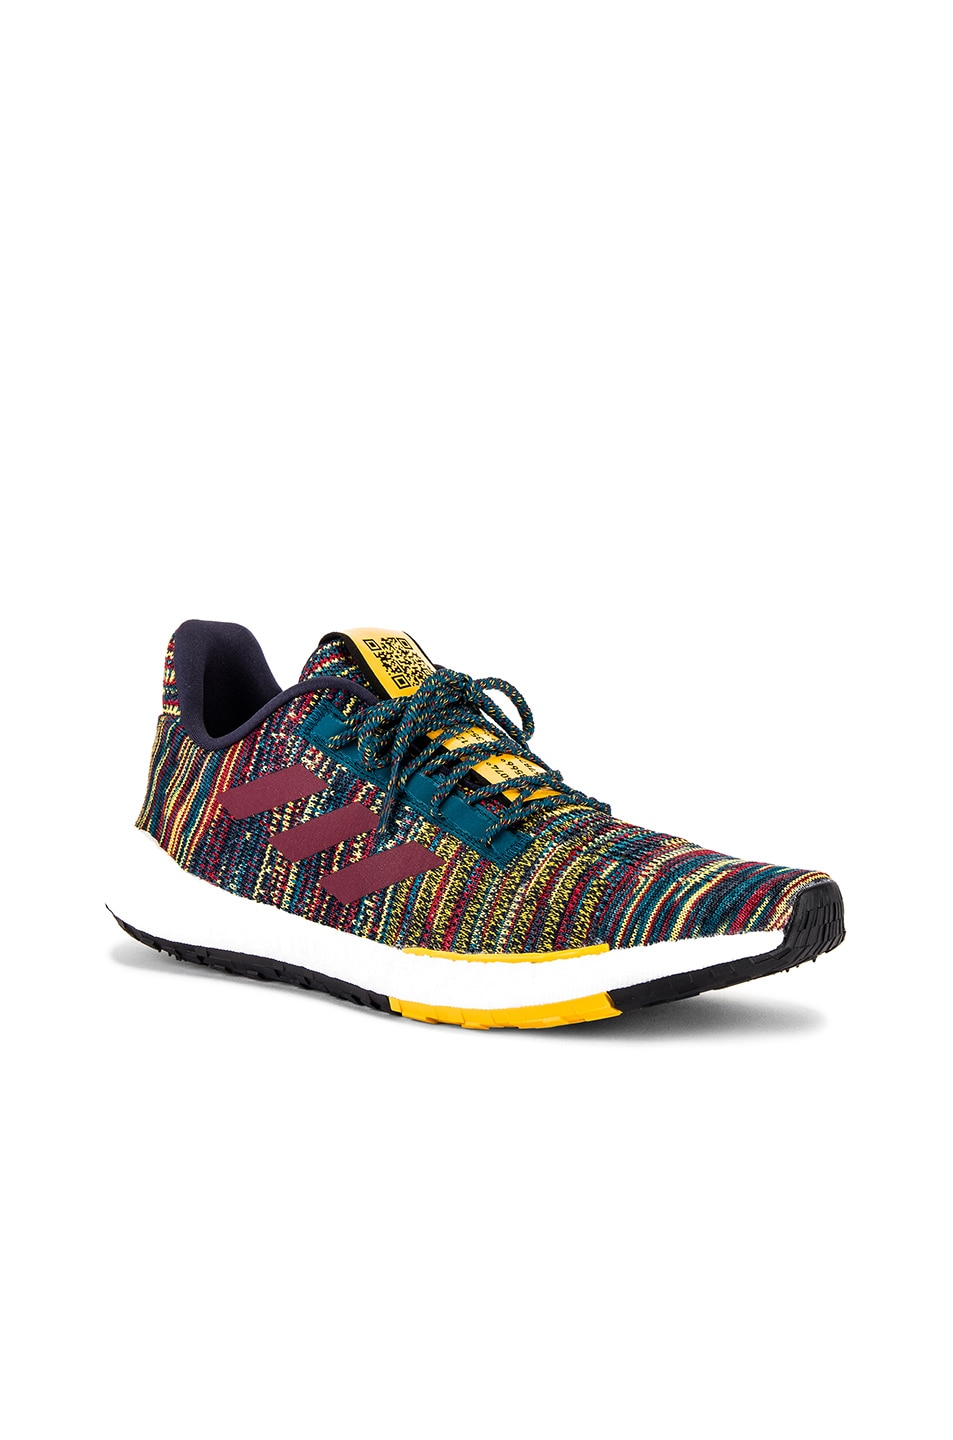 Image 1 of adidas by MISSONI Pulseboost HD in Tech Mineral & Collegiate Burgundy & Active Gold